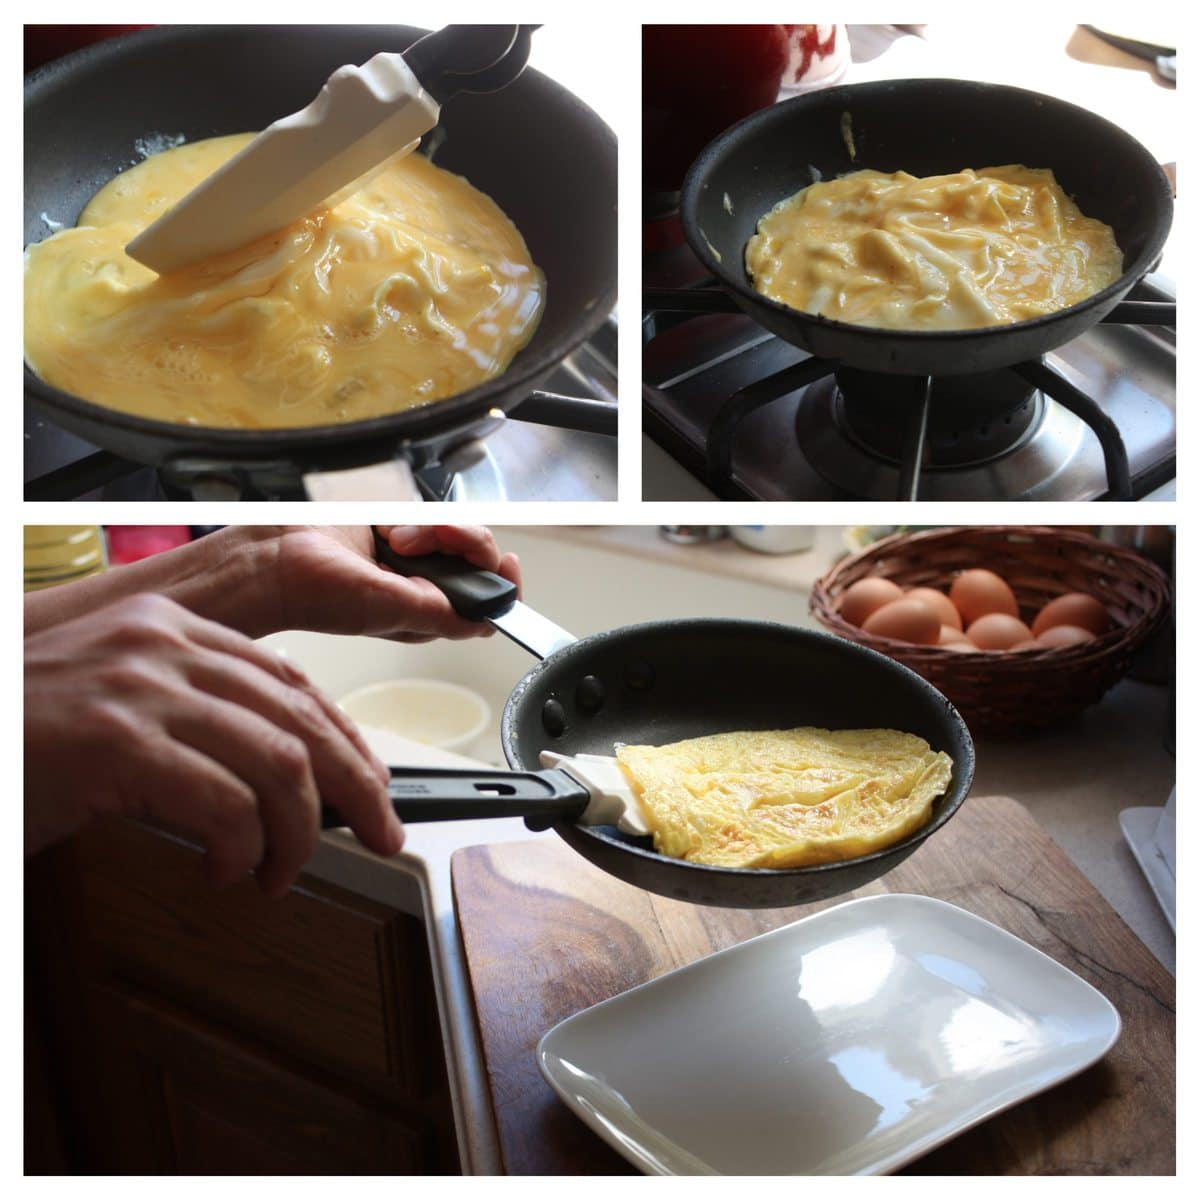 1. Beaten eggs are poured into a heated and oil pan, then the partially-cooked edges are pushed toward the center while allowing uncooked egg to flow toward the outer edges and underneath.  2. As soon as the omelette is half-set, flip over.  If you are filling your omelette this is when you would add them, always cheese first (to give it the most chance to melt).  3. Notice how I have my hands positioned in preparation of the final flip.  I've also partially folded at this point too.